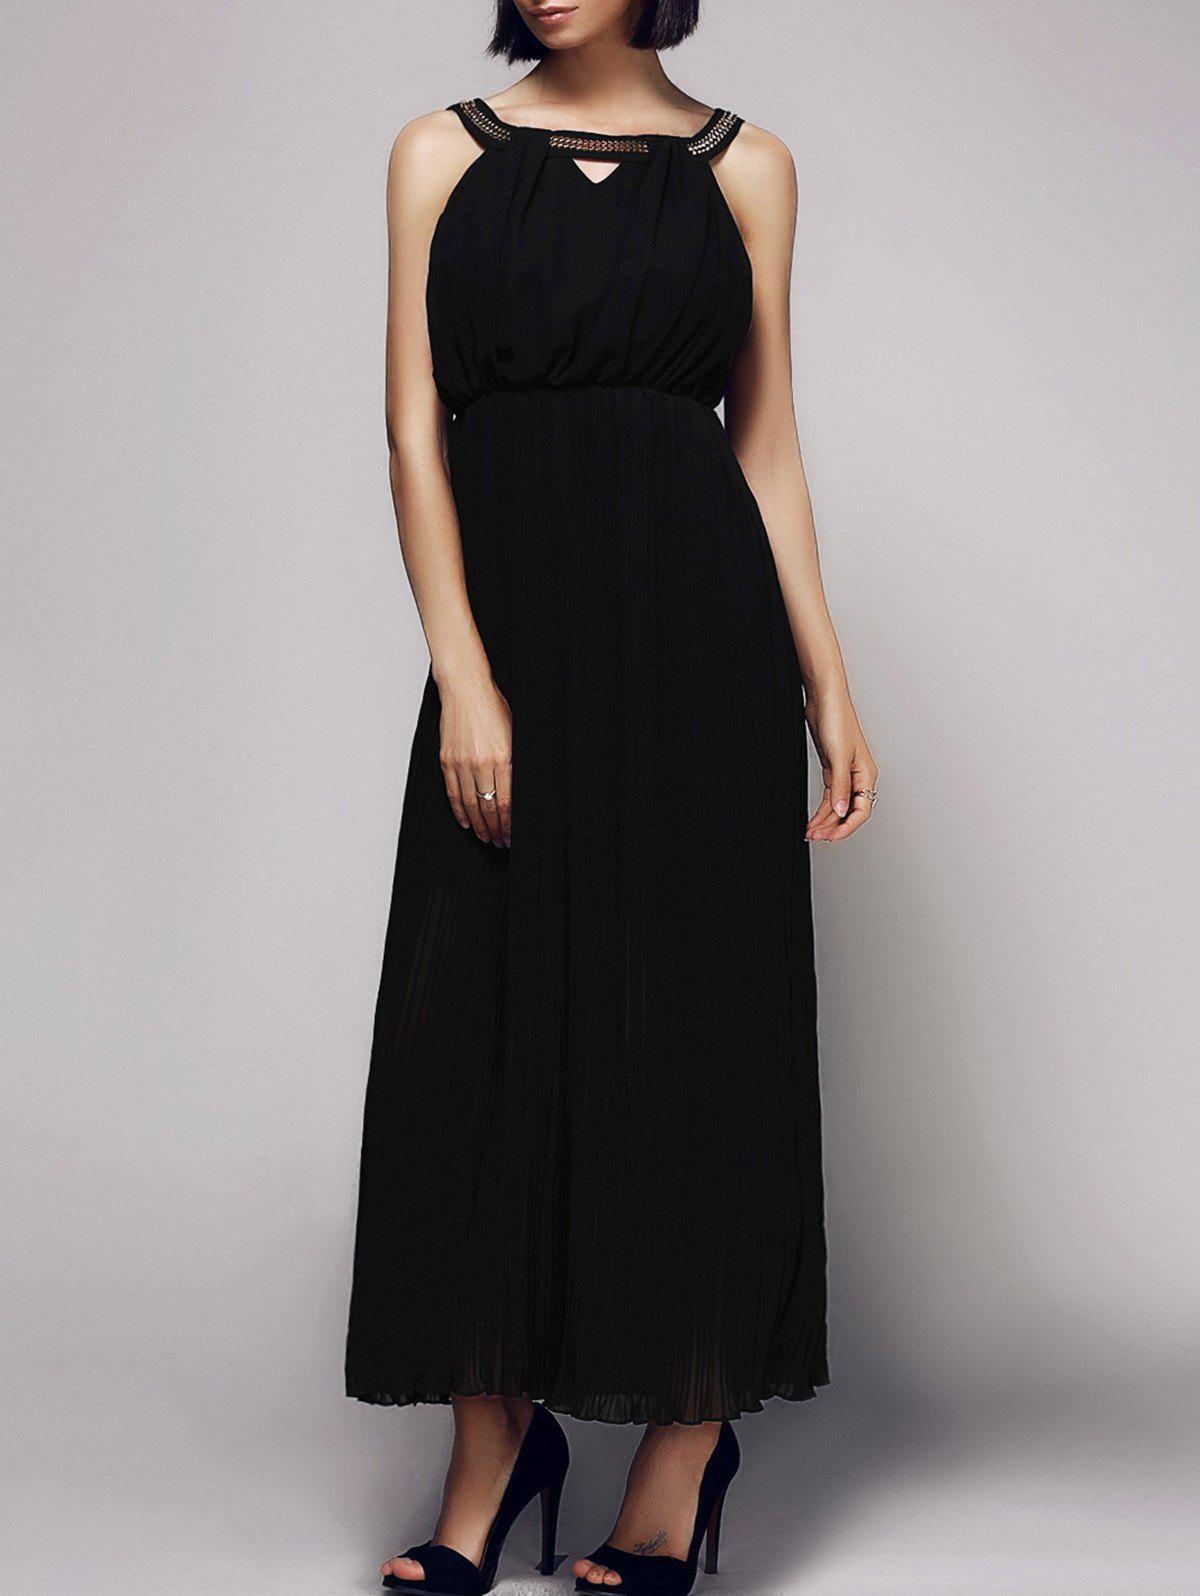 Elegant Women's Sleeveless Rhinestoned Hollow Out Chiffon Dress